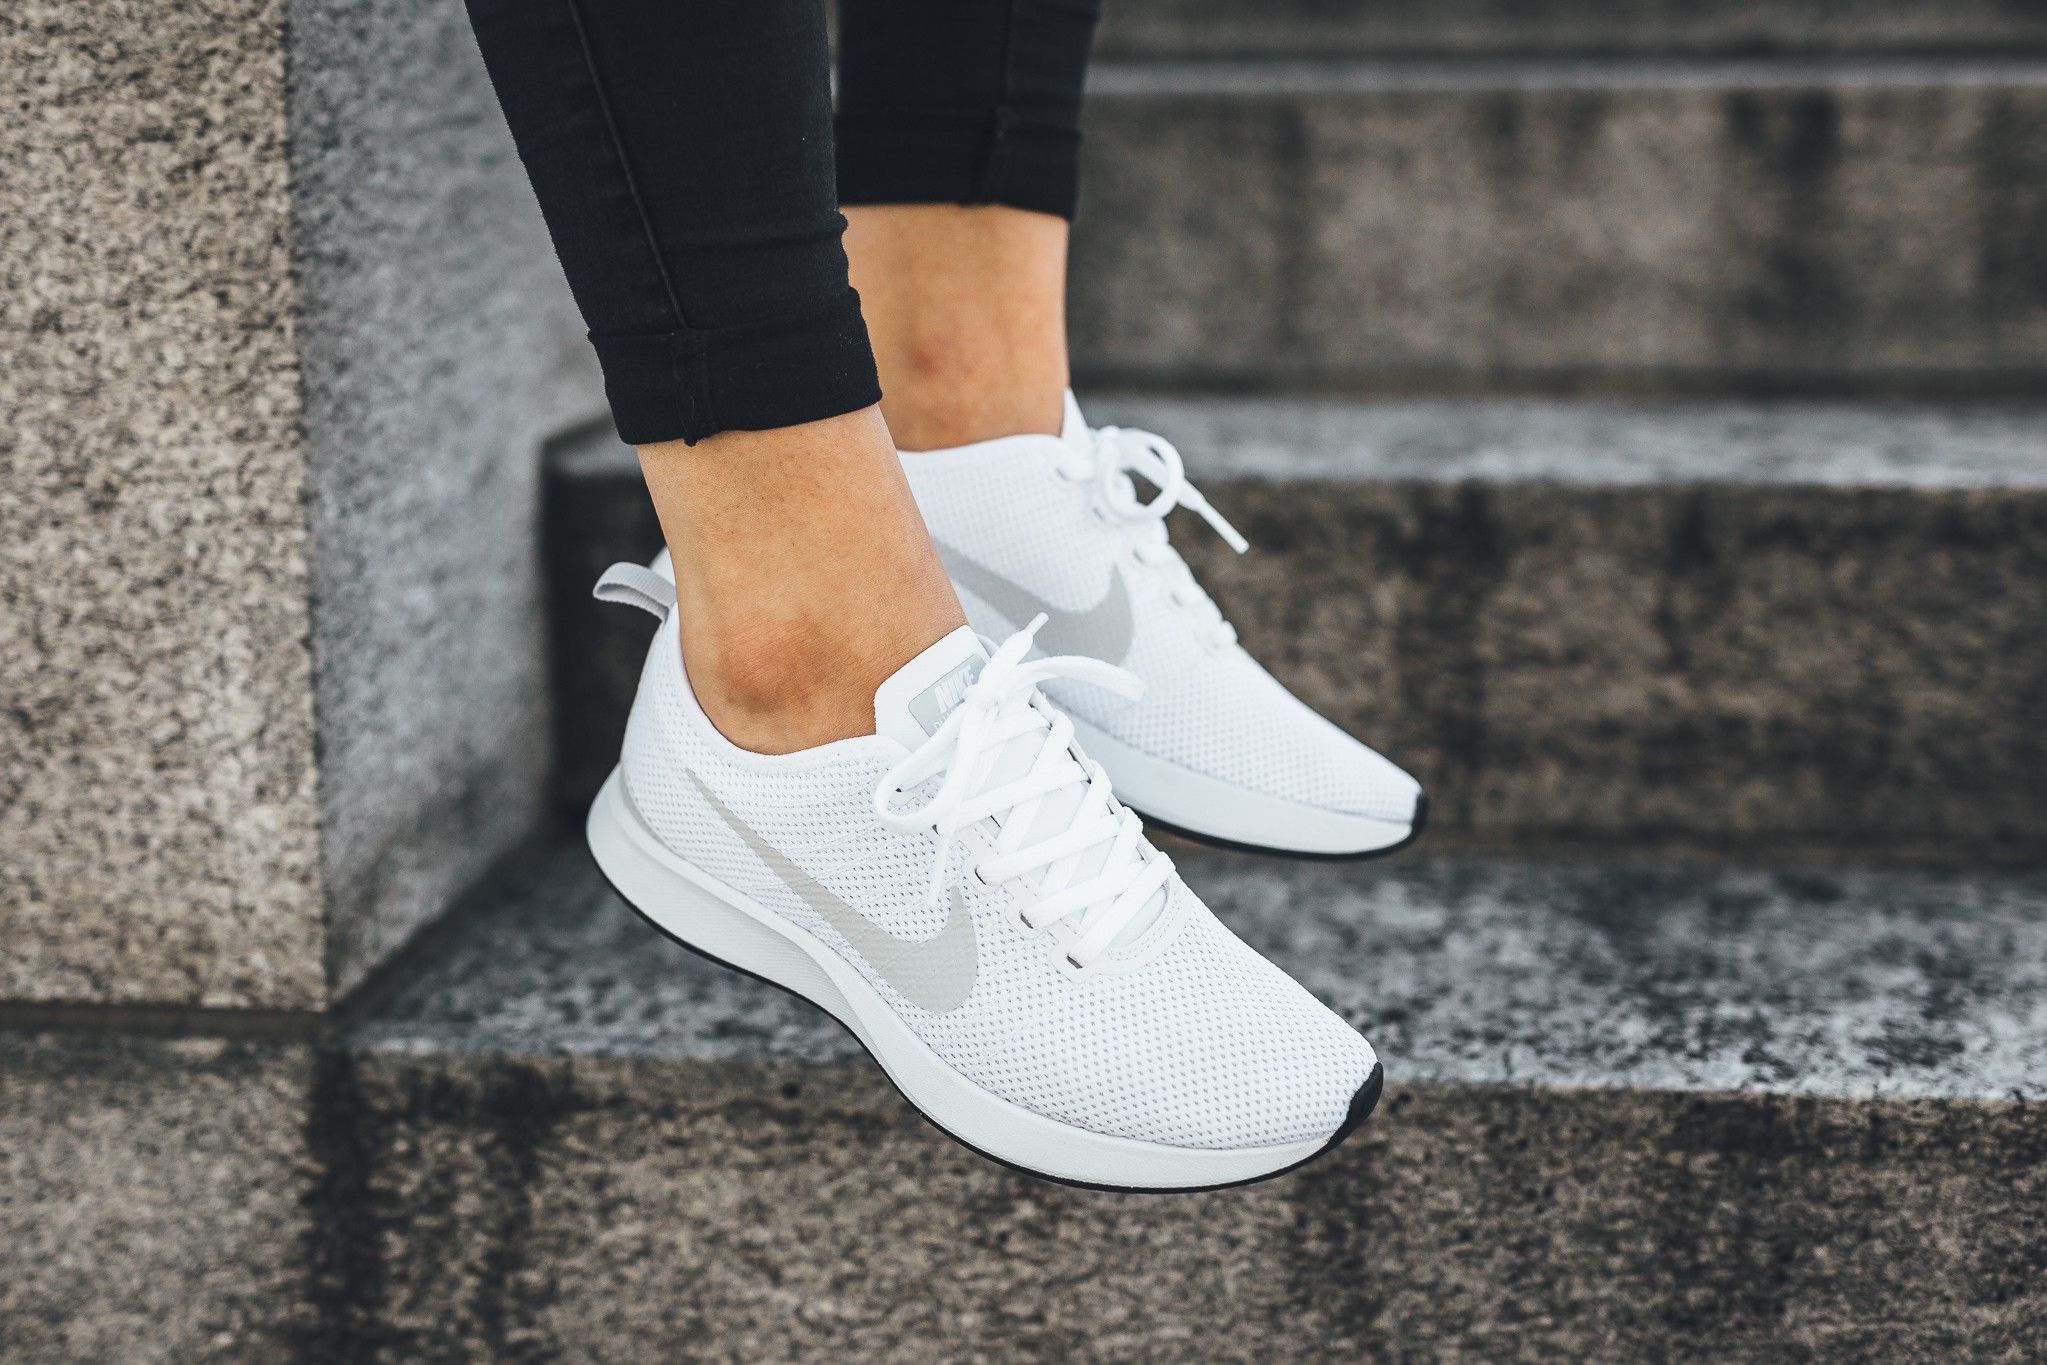 Nike's Dualtone Racer Gets Touched by an Angel: Nike's Dualtone Racer  arrives in a wispy white sent from the cloudy skies above.